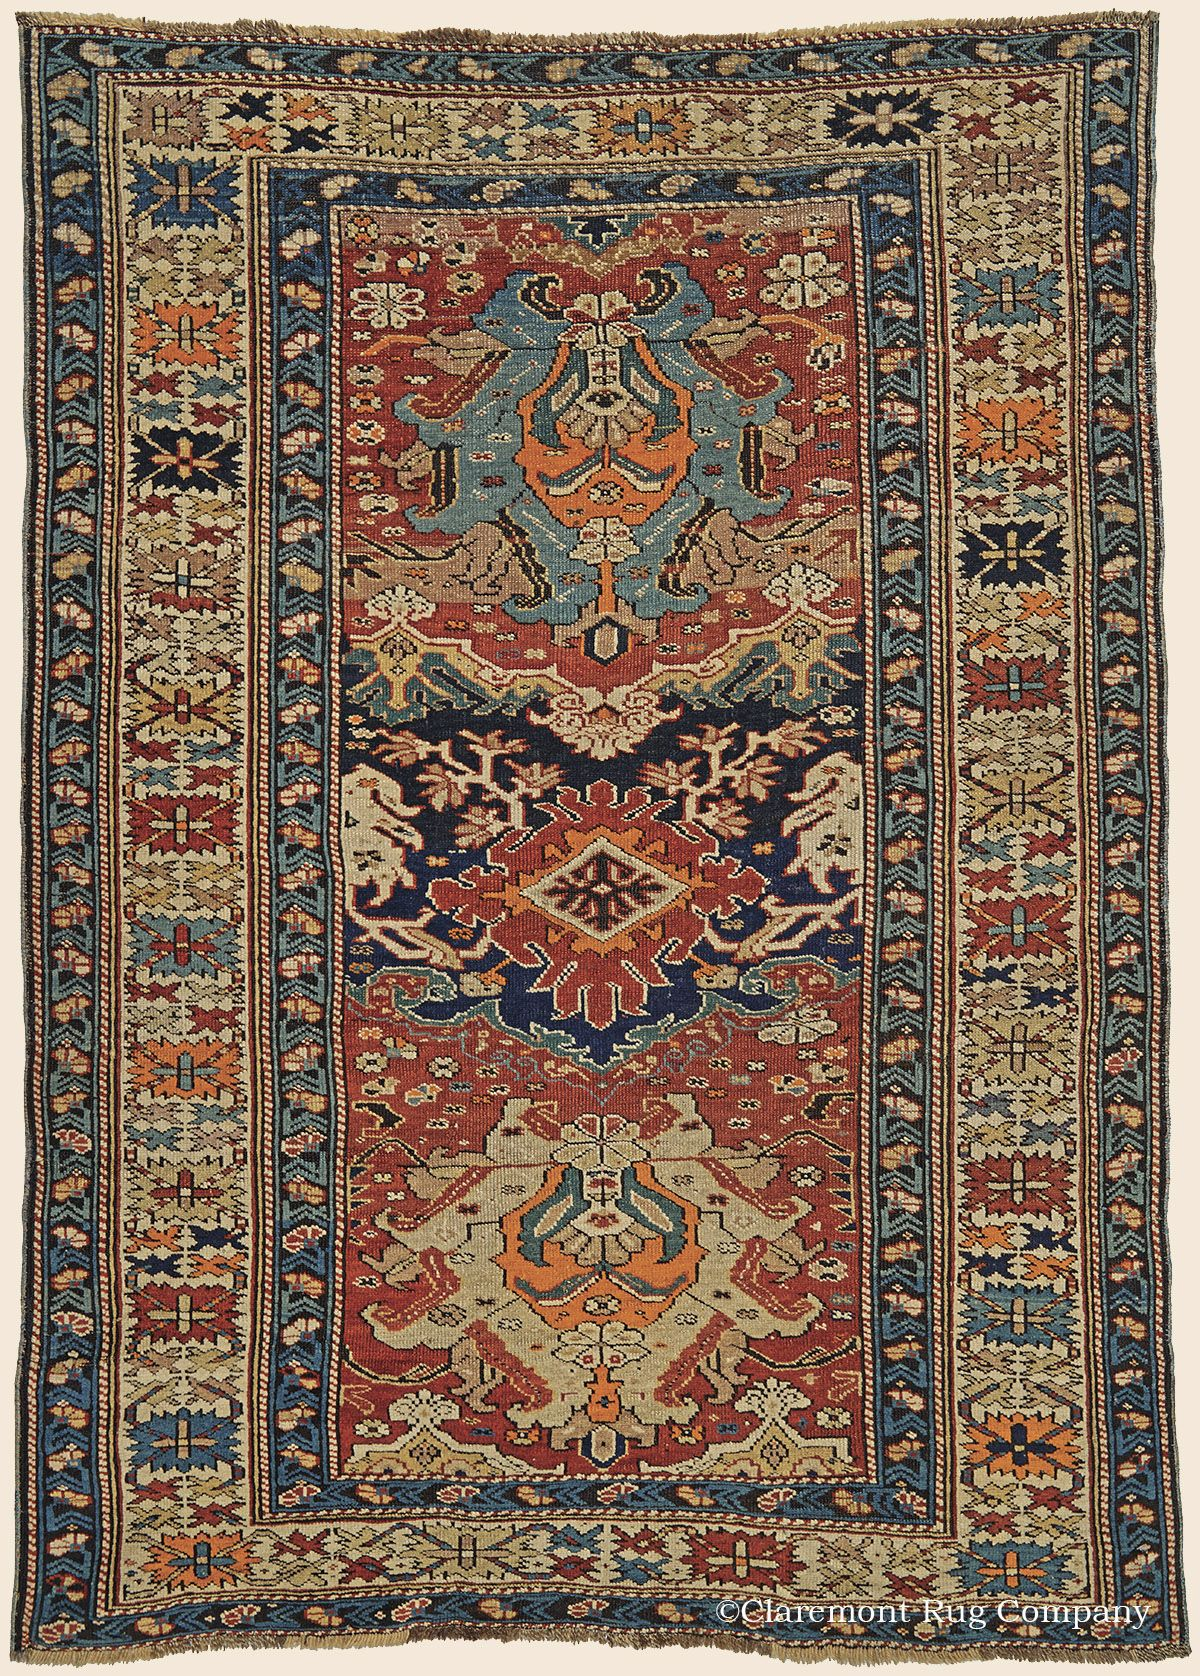 Sorry This Rug Is No Longer Available Claremont Rug Company Rugs On Carpet Claremont Rug Company Rugs